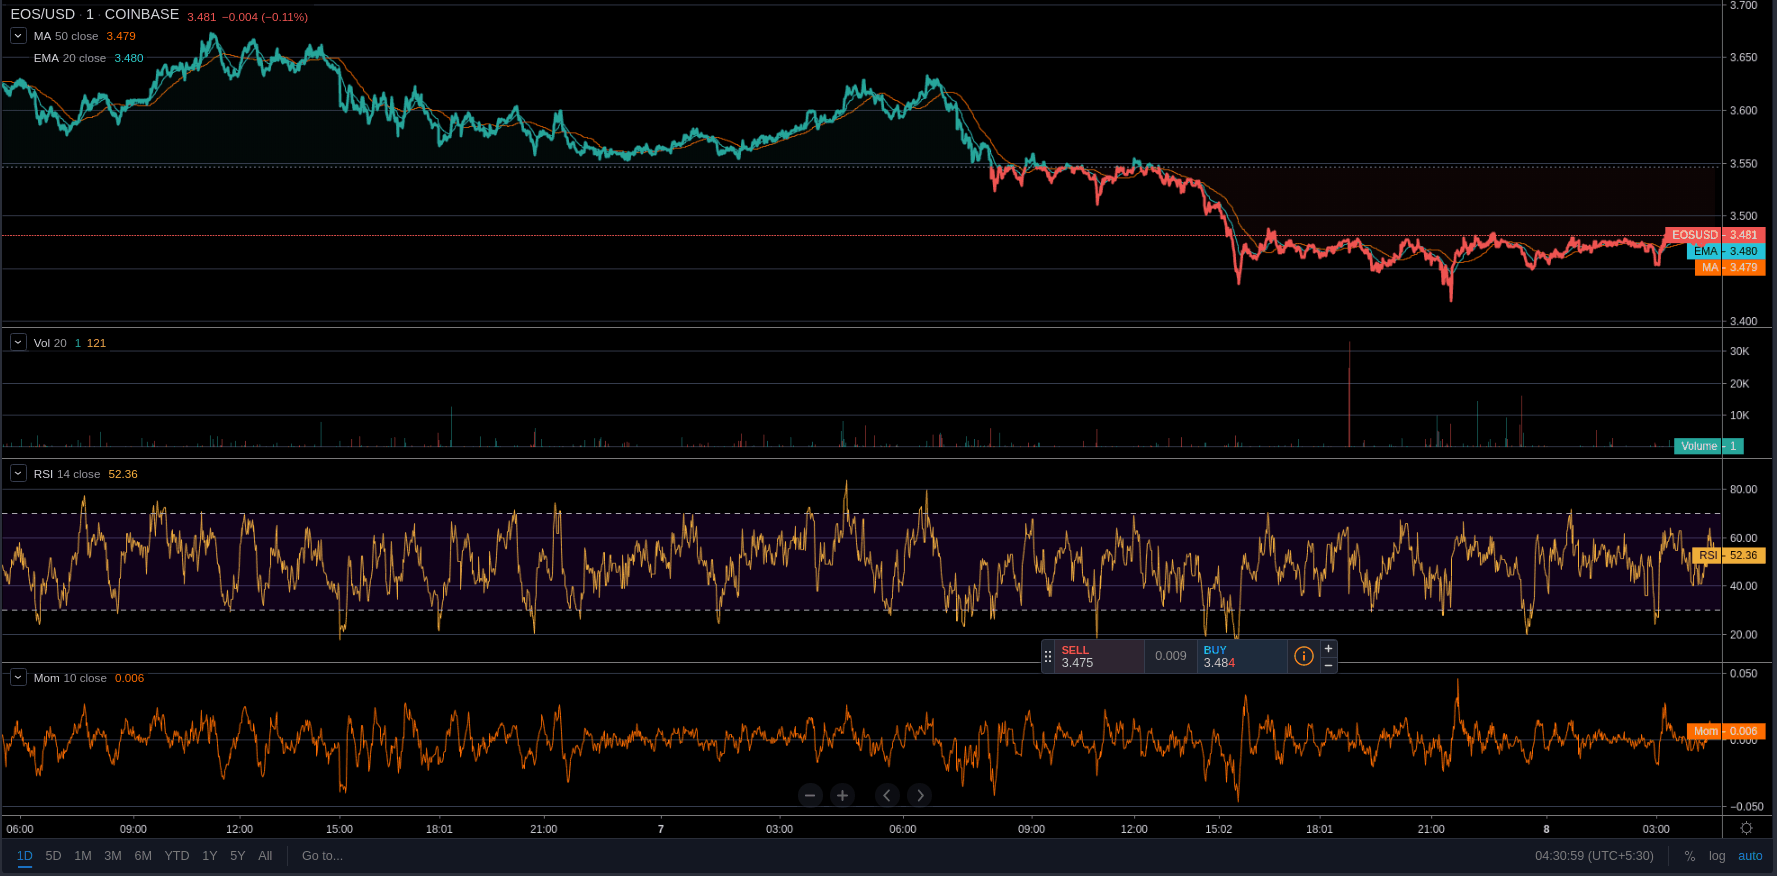 EOS Price meets a drop of 2.91% 7